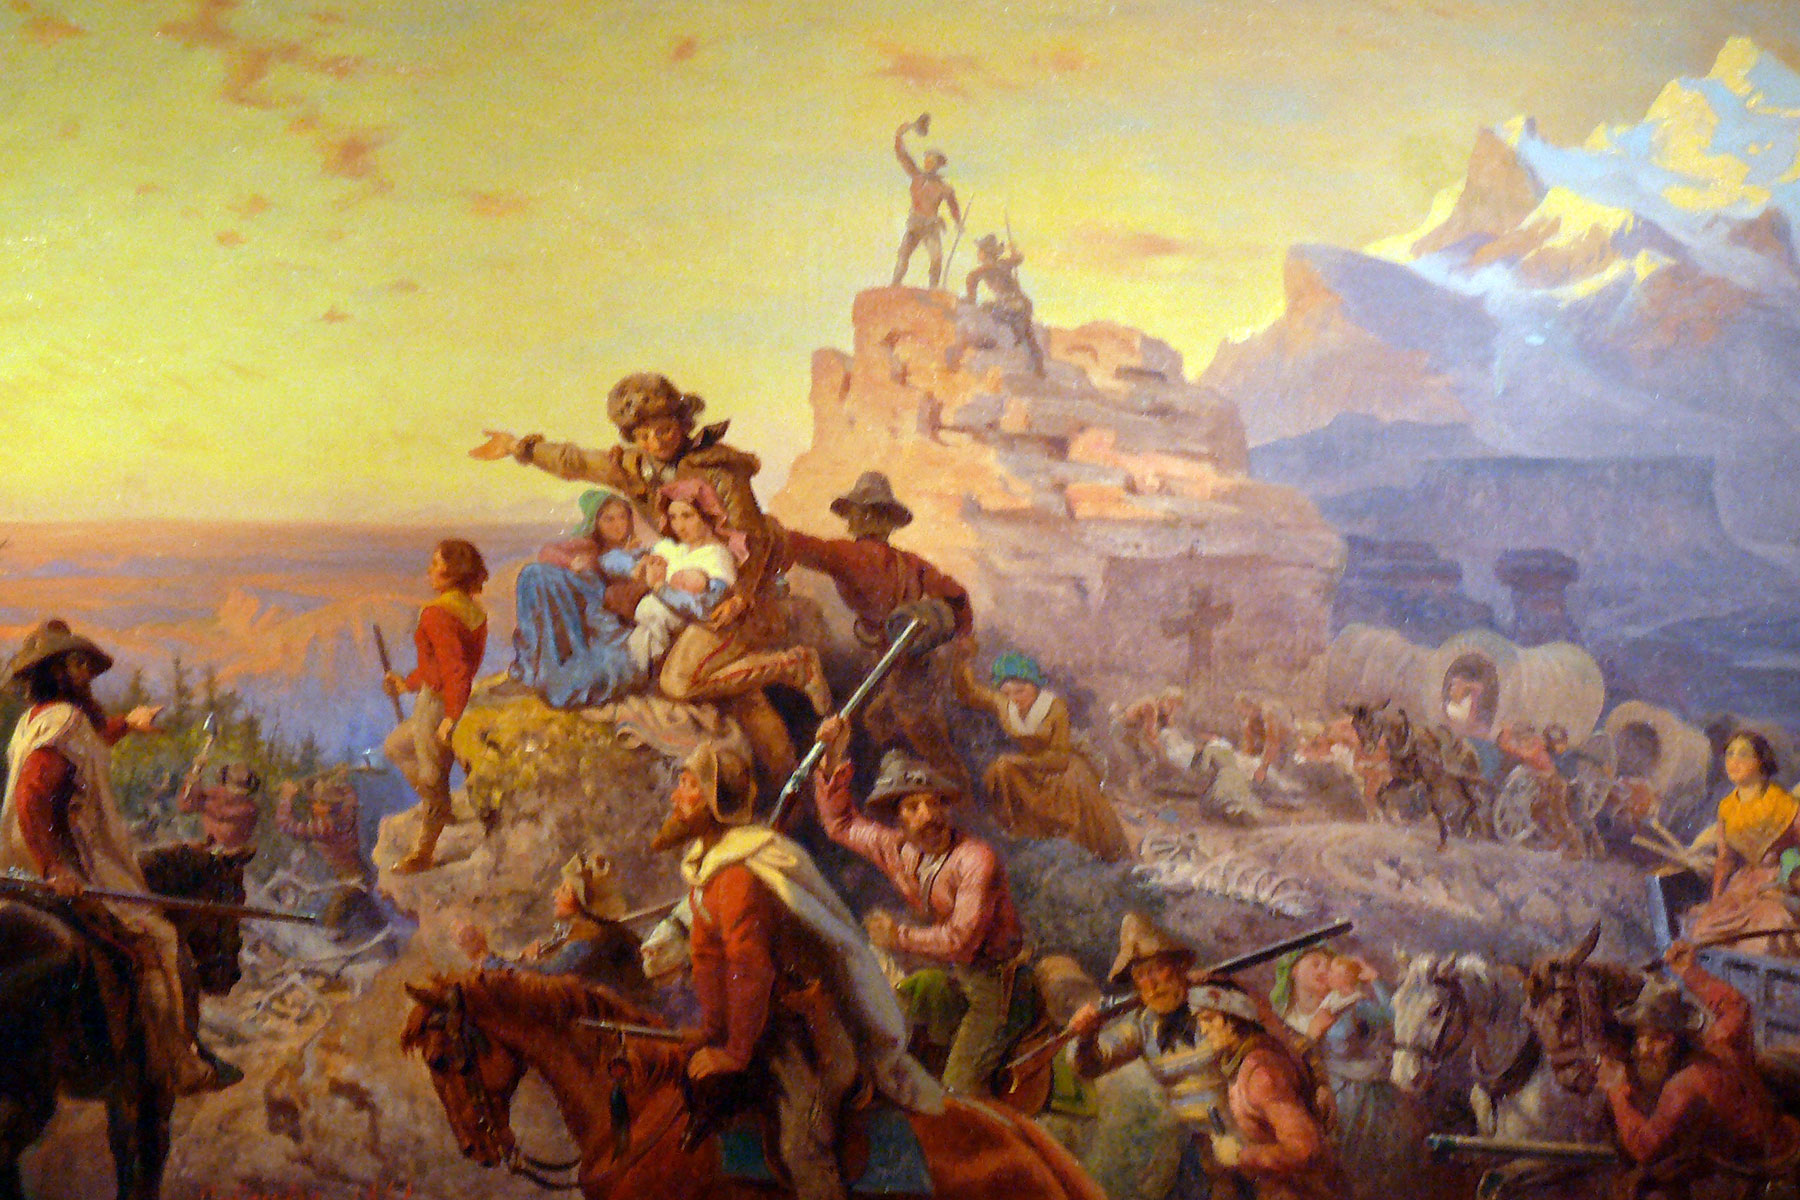 pro manifest destiny essays Manifest destiny was an idea that heavily shaped american policy in the 1800s american manifest destiny was the major driving force behind the massive territorial expansion for the united states during the 1840s.